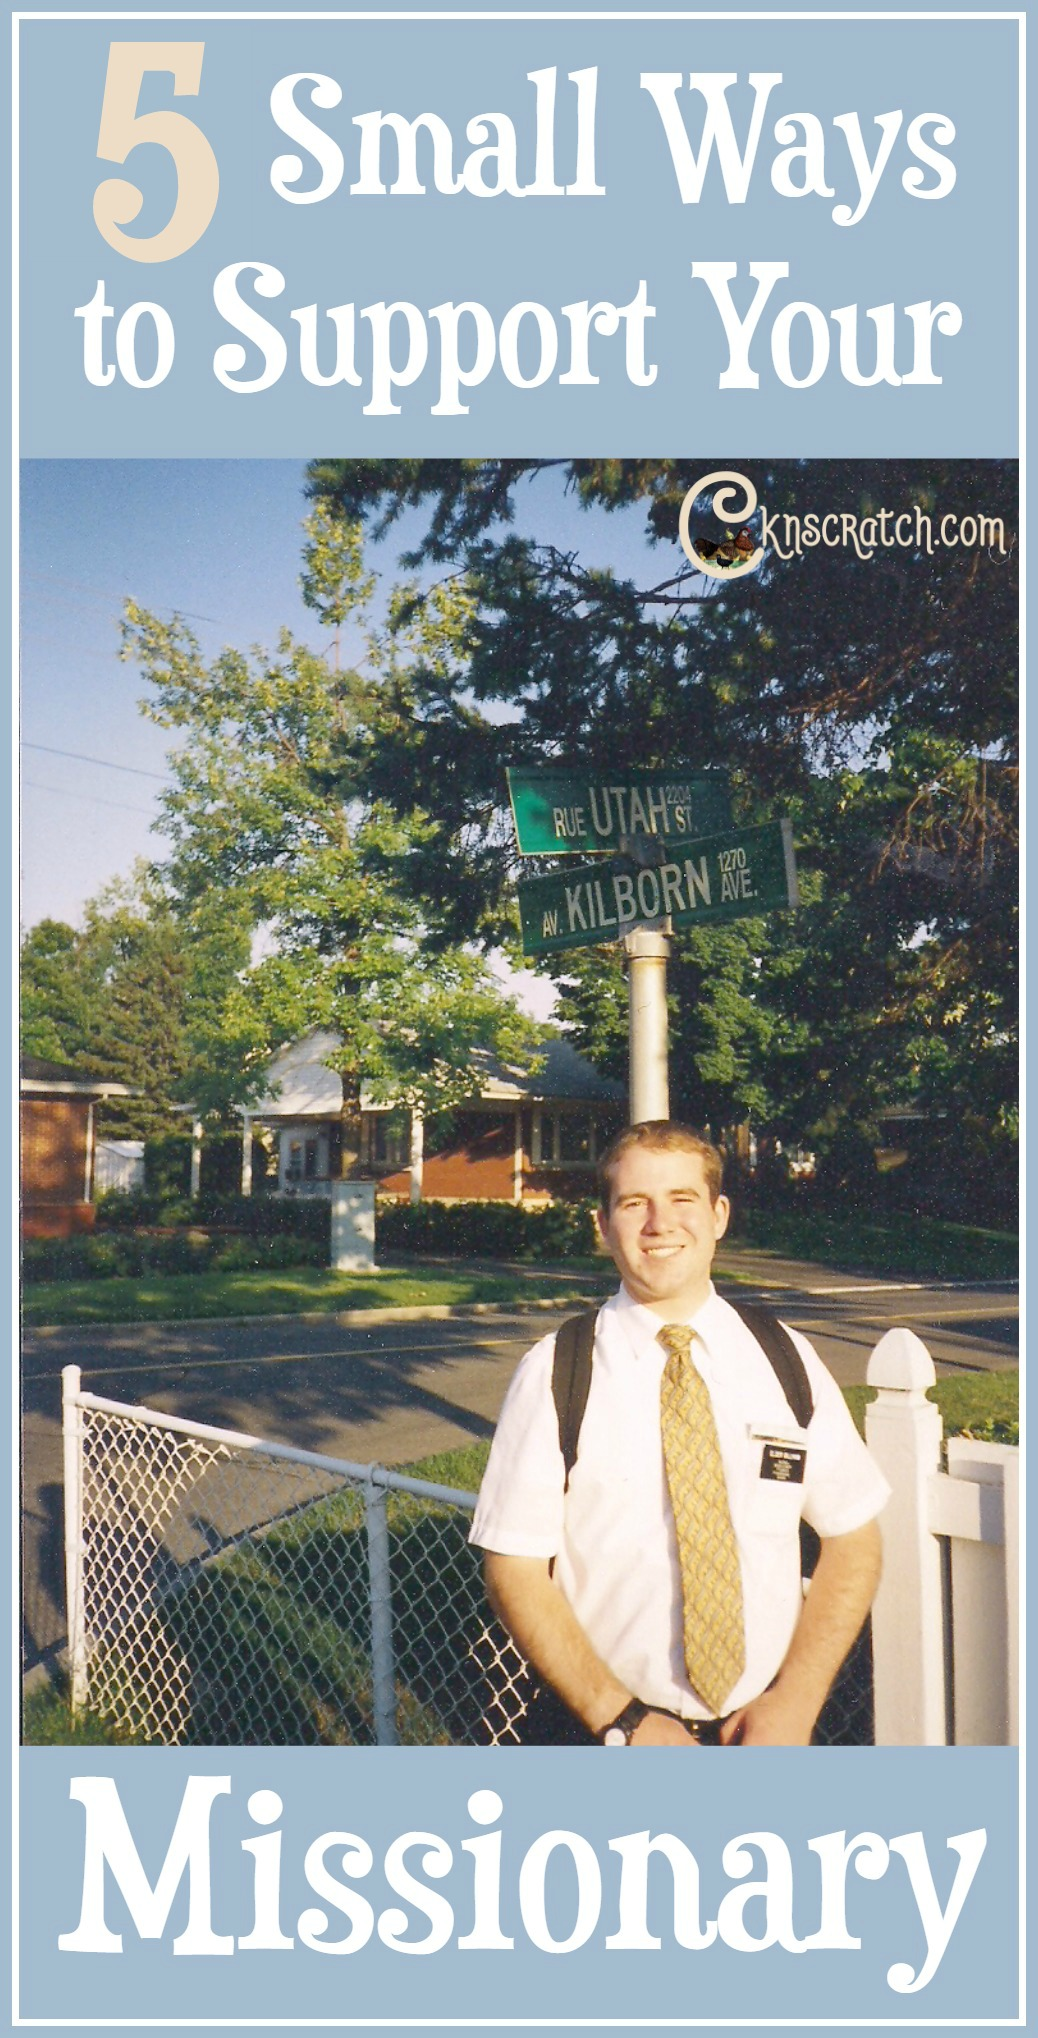 These are great- simple ways to support your LDS missionary